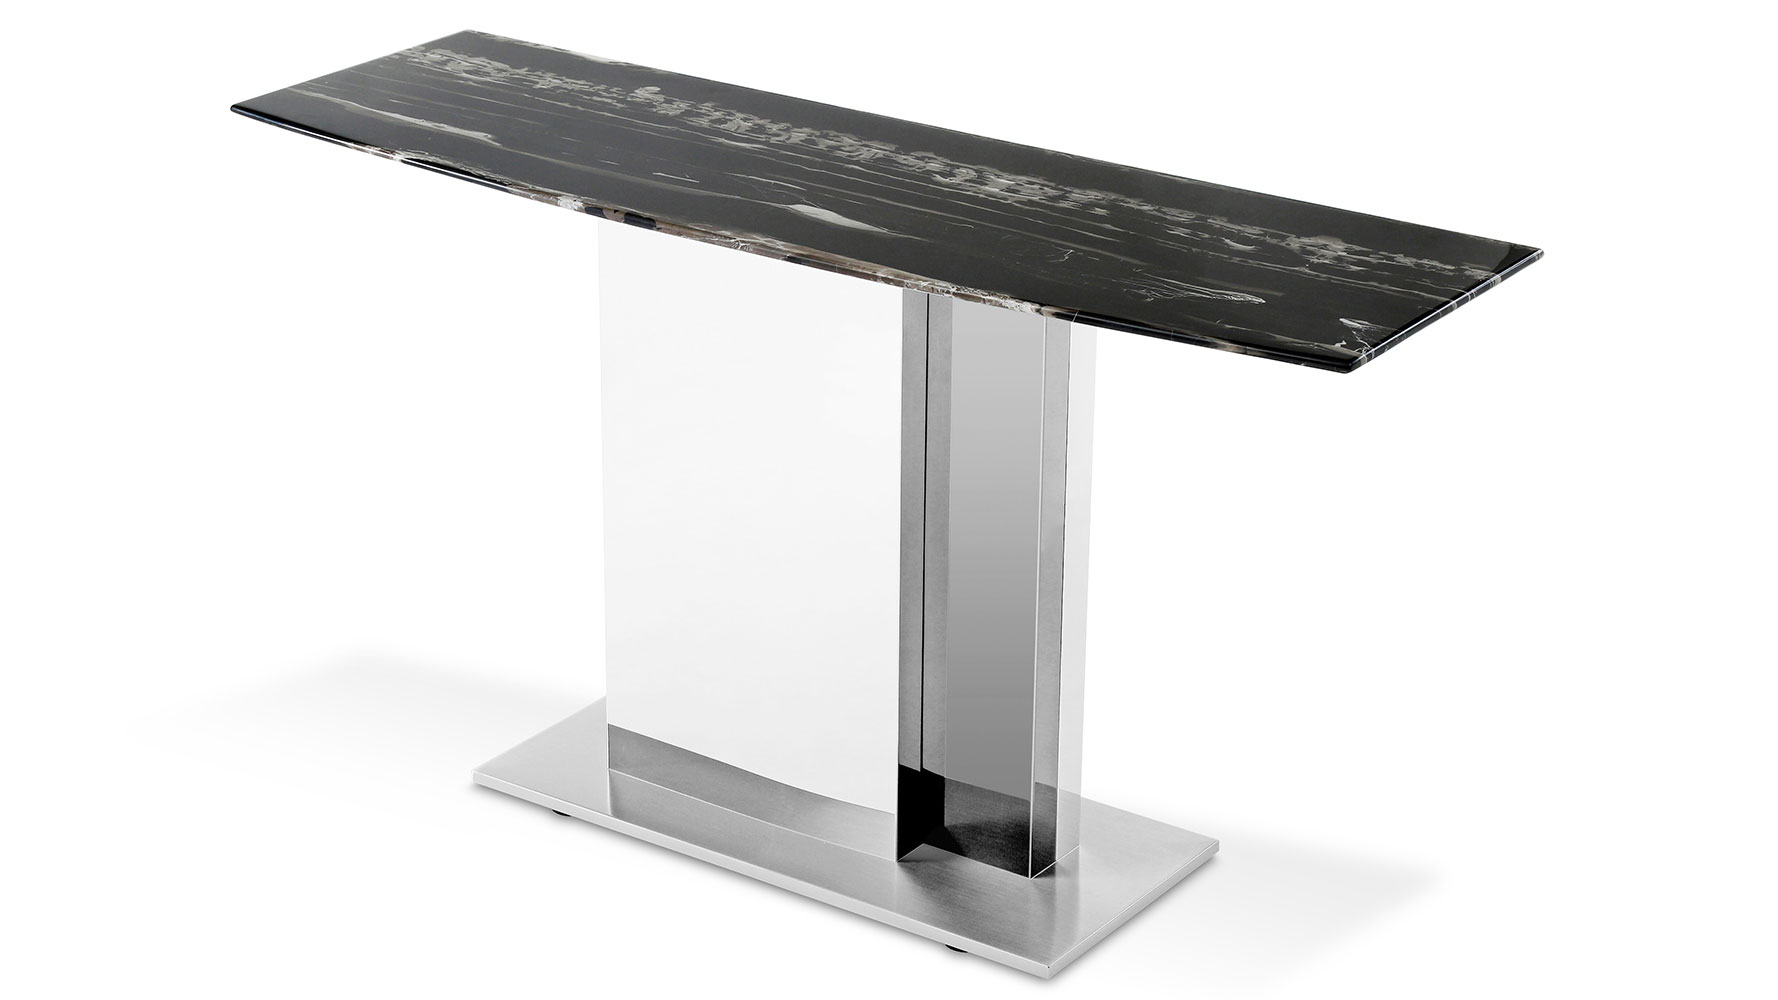 coffee tables living room tables  modern console tables  zuri furniture. coffee tables living room tables  modern console tables  zuri